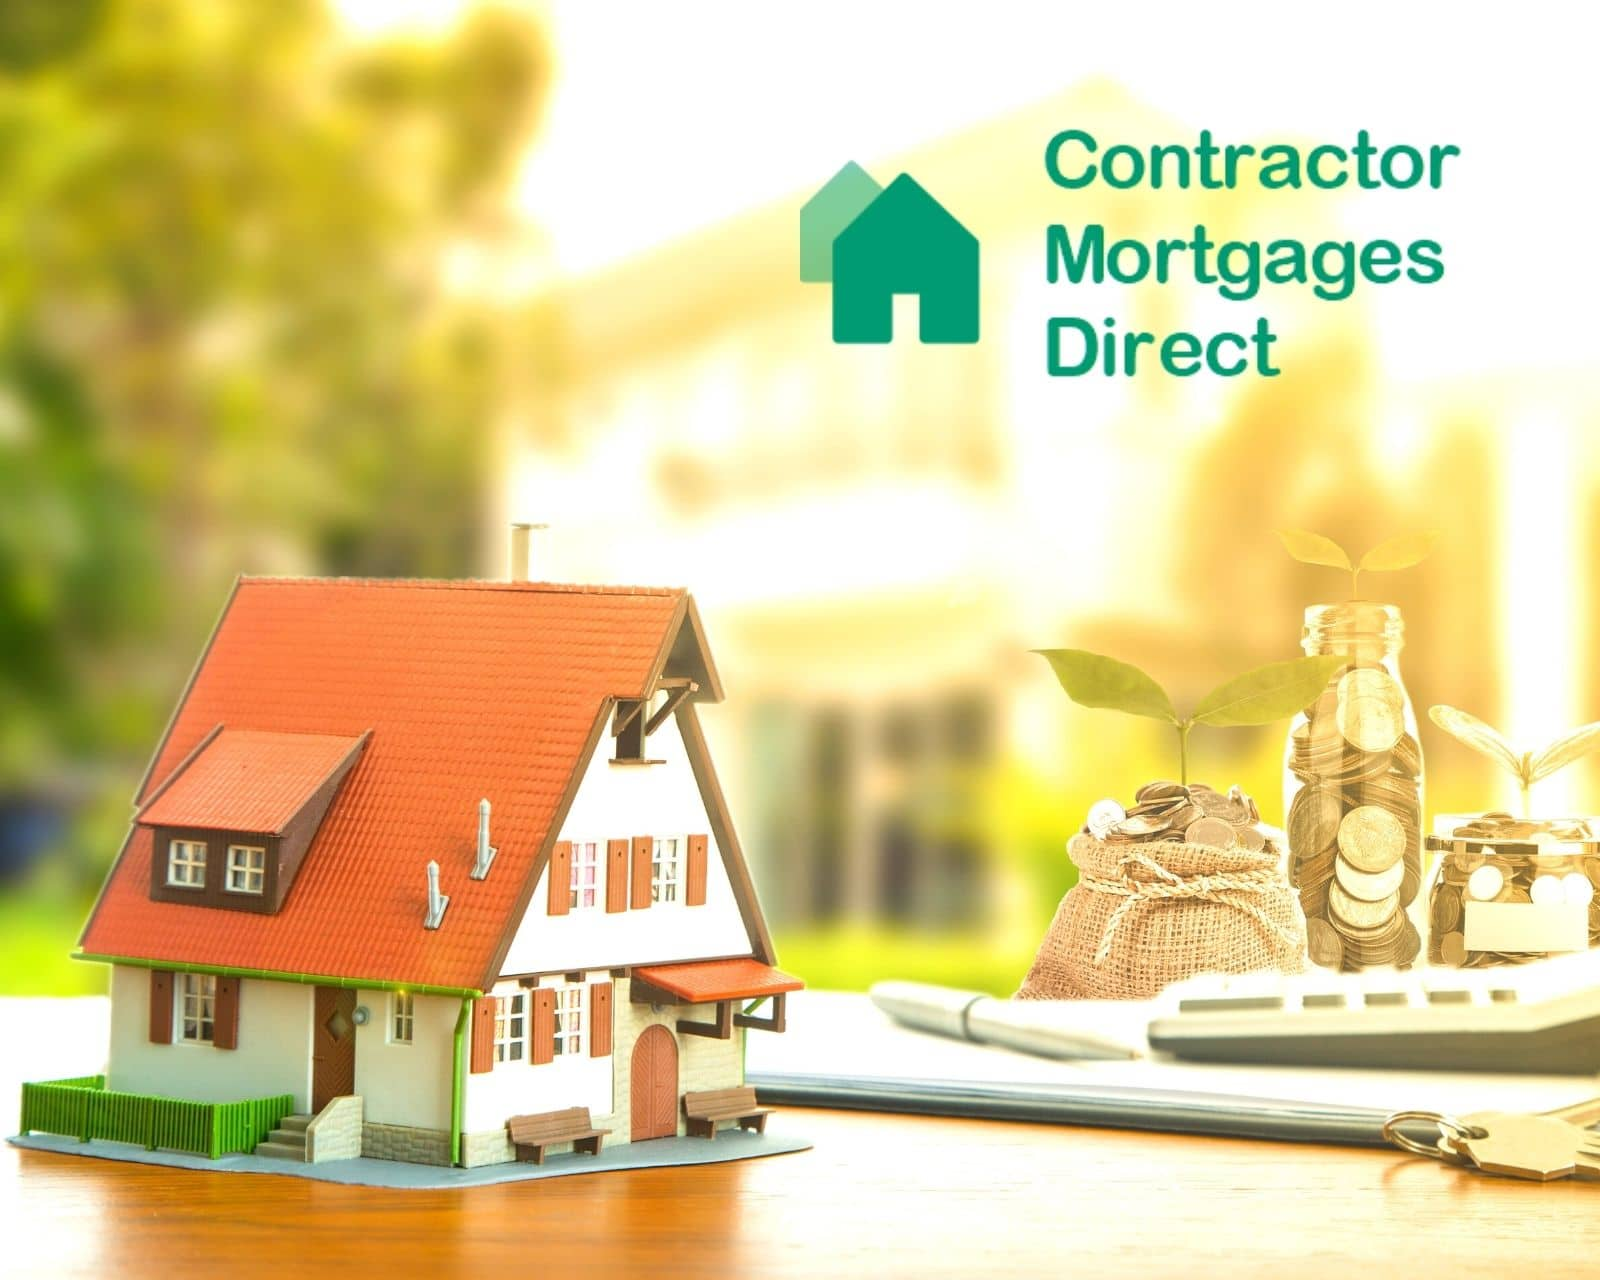 Freelance Copywriter for contractor mortgages - website copy, blog writing services, article writing services, copywriting services, books, courses, lead magnets and more... Cheshire, England,UK